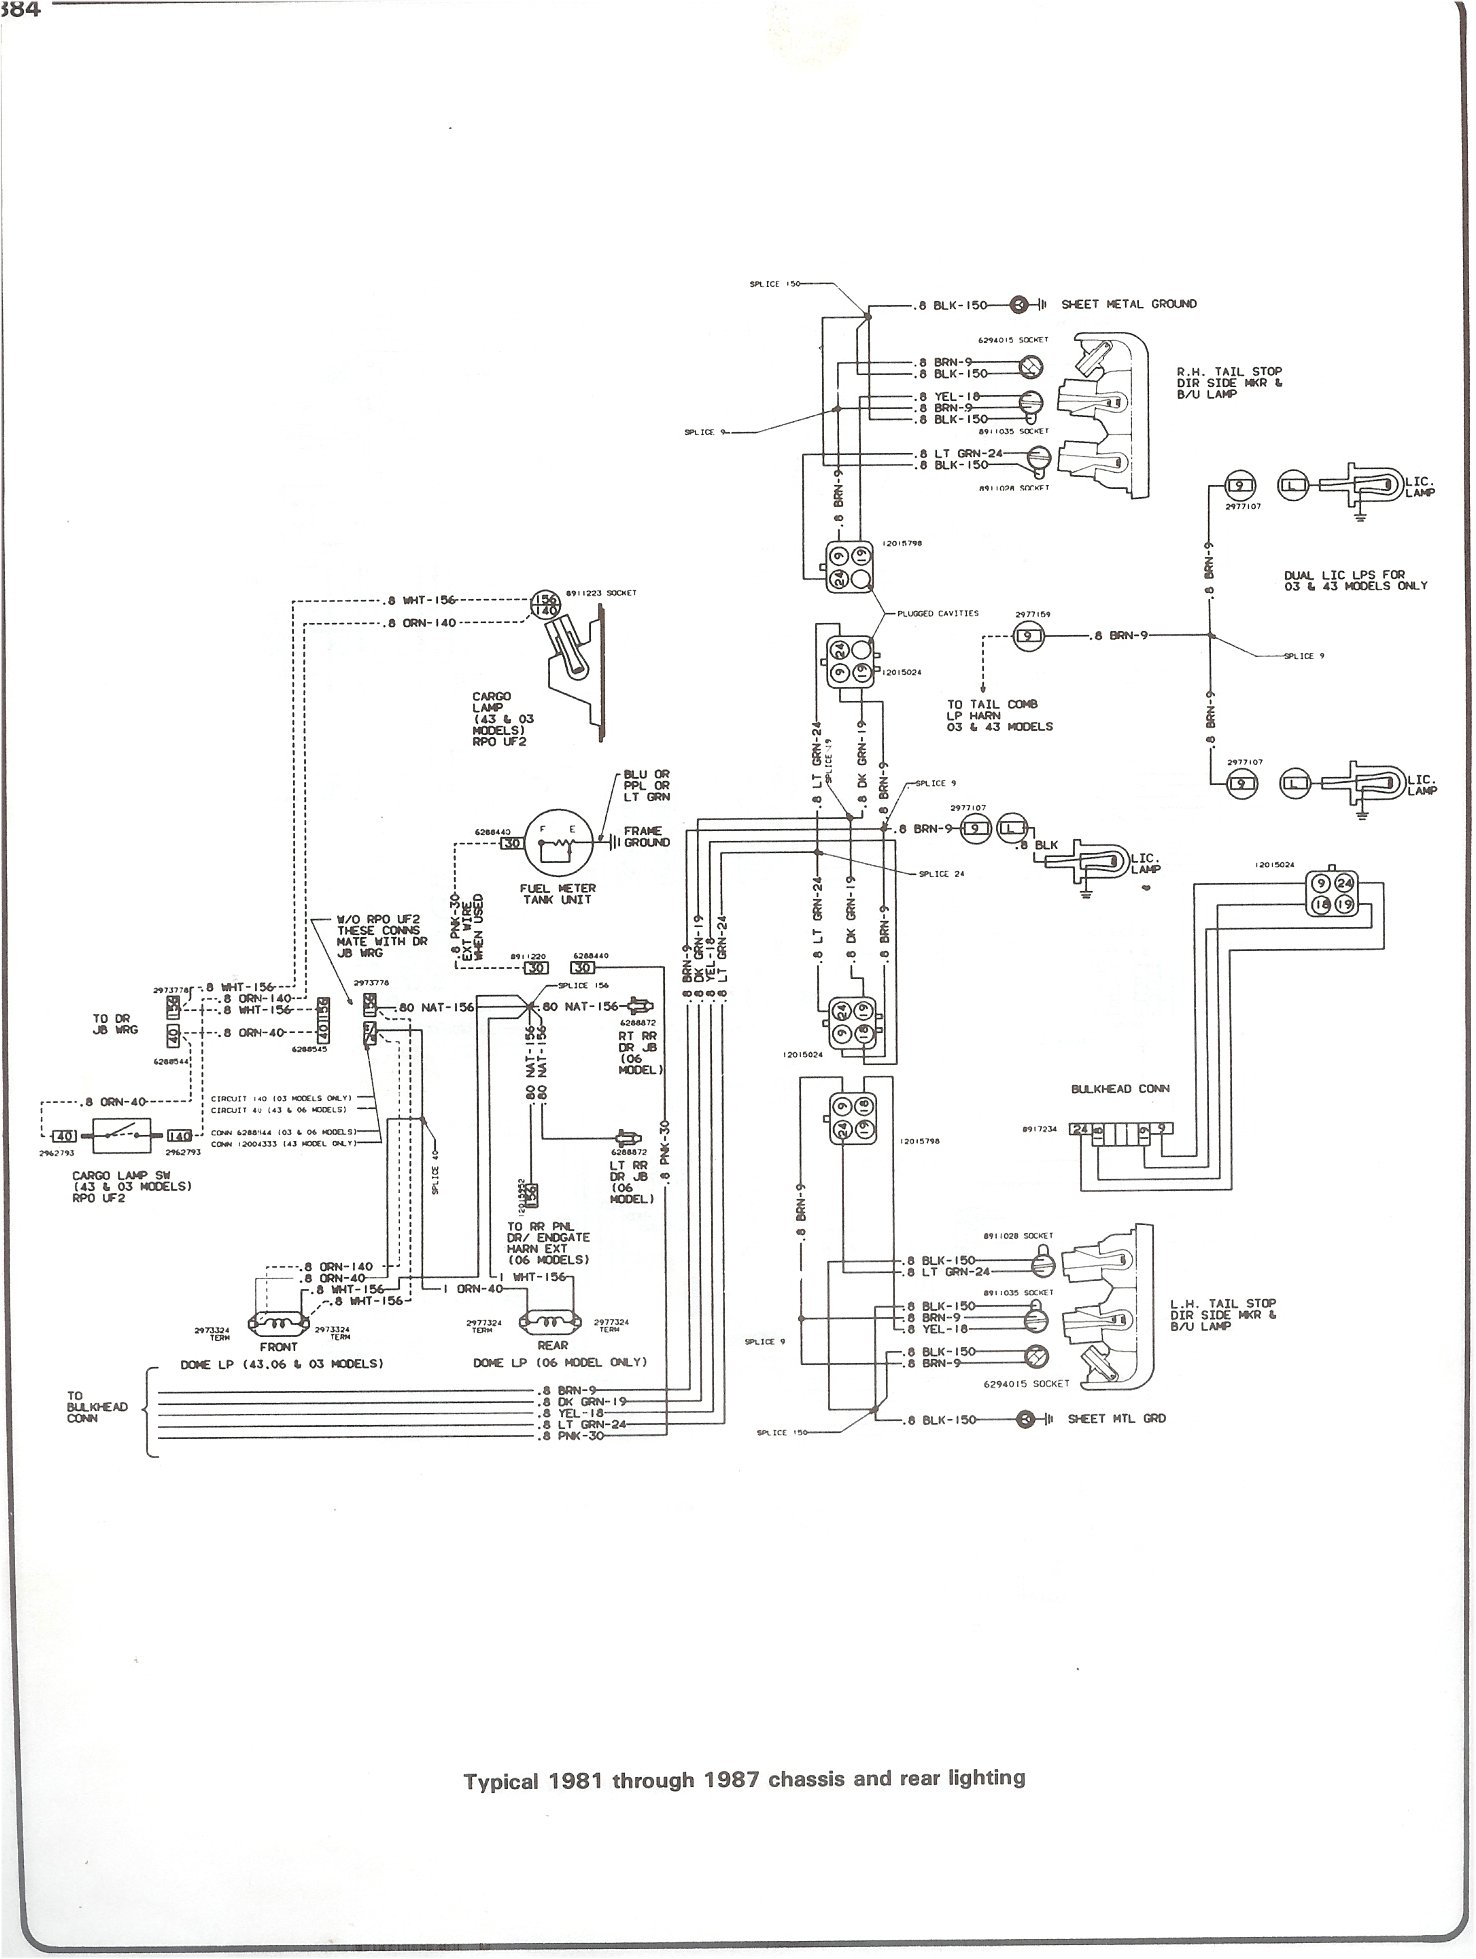 75 chev truck light wiring diagram wiring diagram Ford F-250 Wiring Diagram light switch diagram 1975 chevy truck online wiring diagram75 chevy truck wiring diagram wiring library1975 chevy